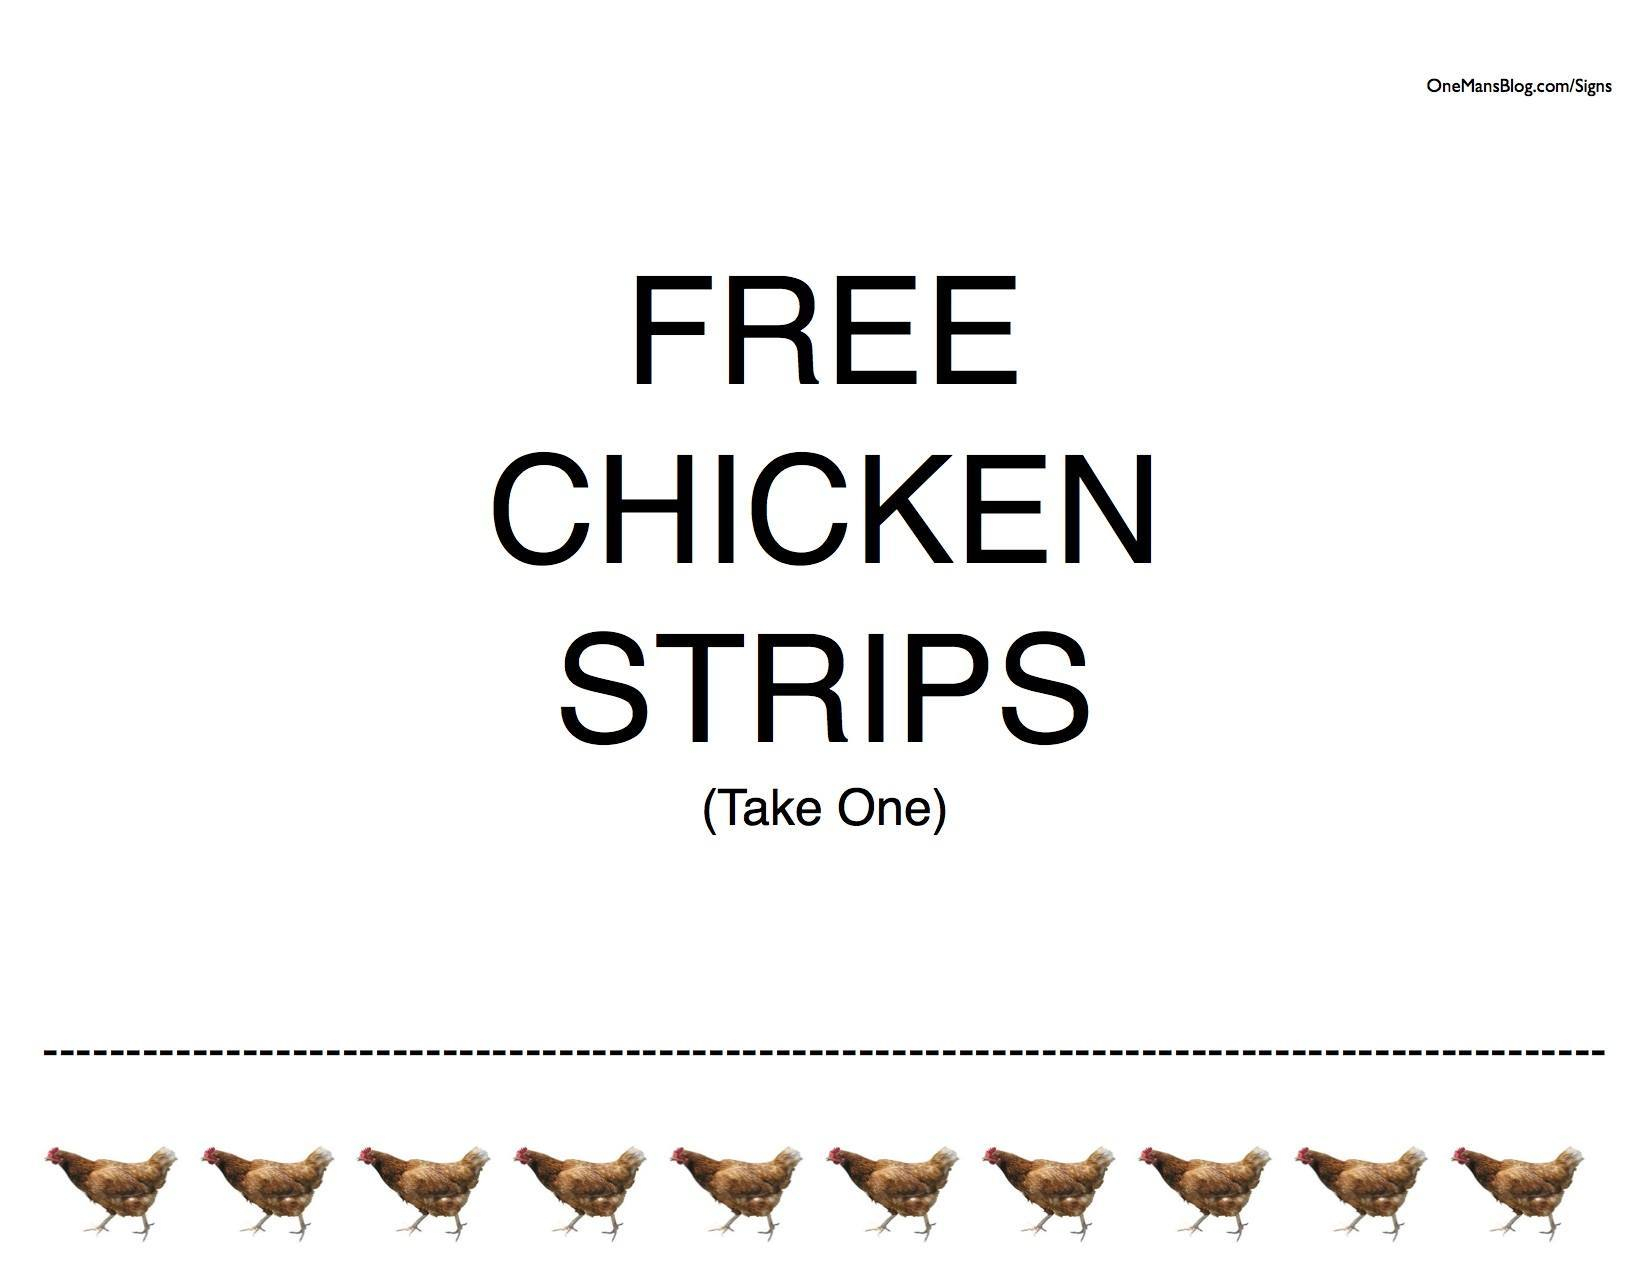 50+ Free Funny Signs (To Print Out And Post!) - Free Printable Funny Signs